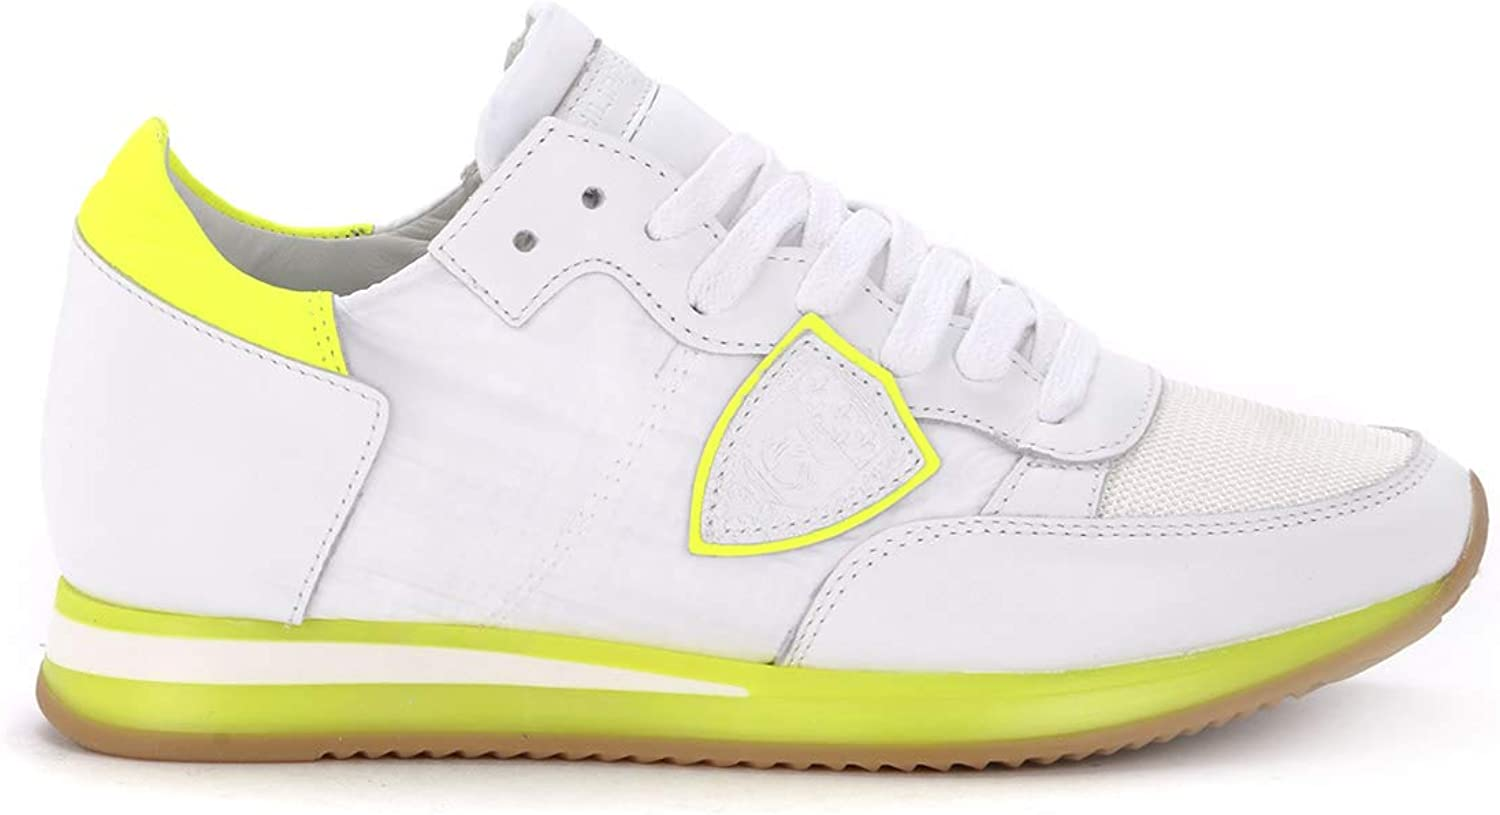 PHILIPPE MODEL Woman's Tropez Whiteand Fluo Yellow Fabric and Leather Sneaker